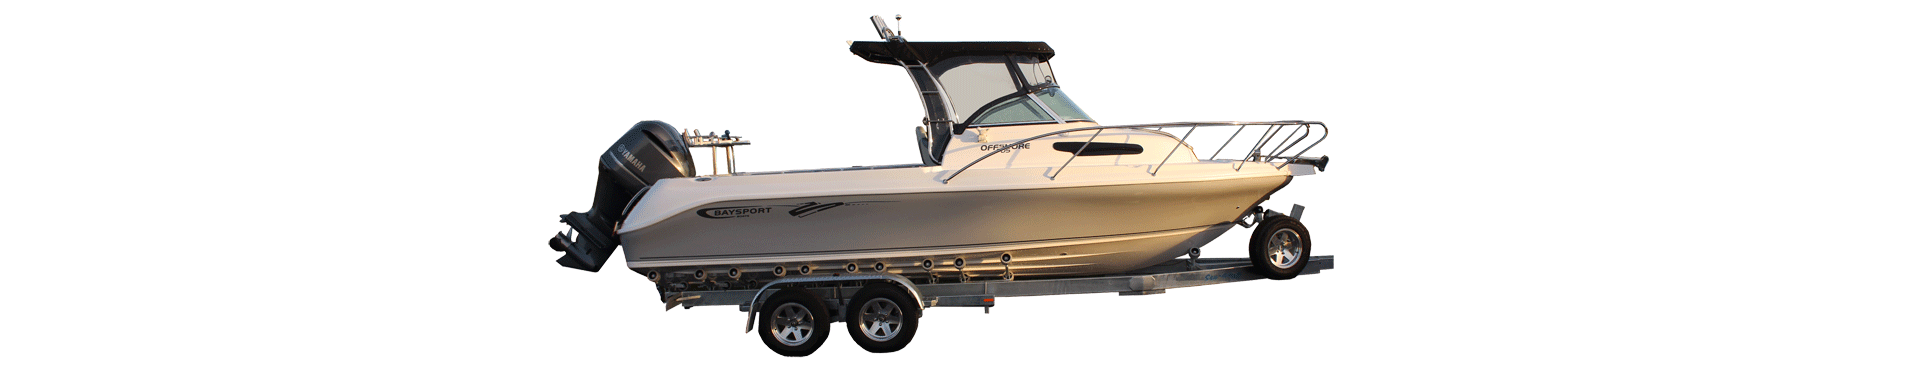 Baysport Boats 705 Offshore